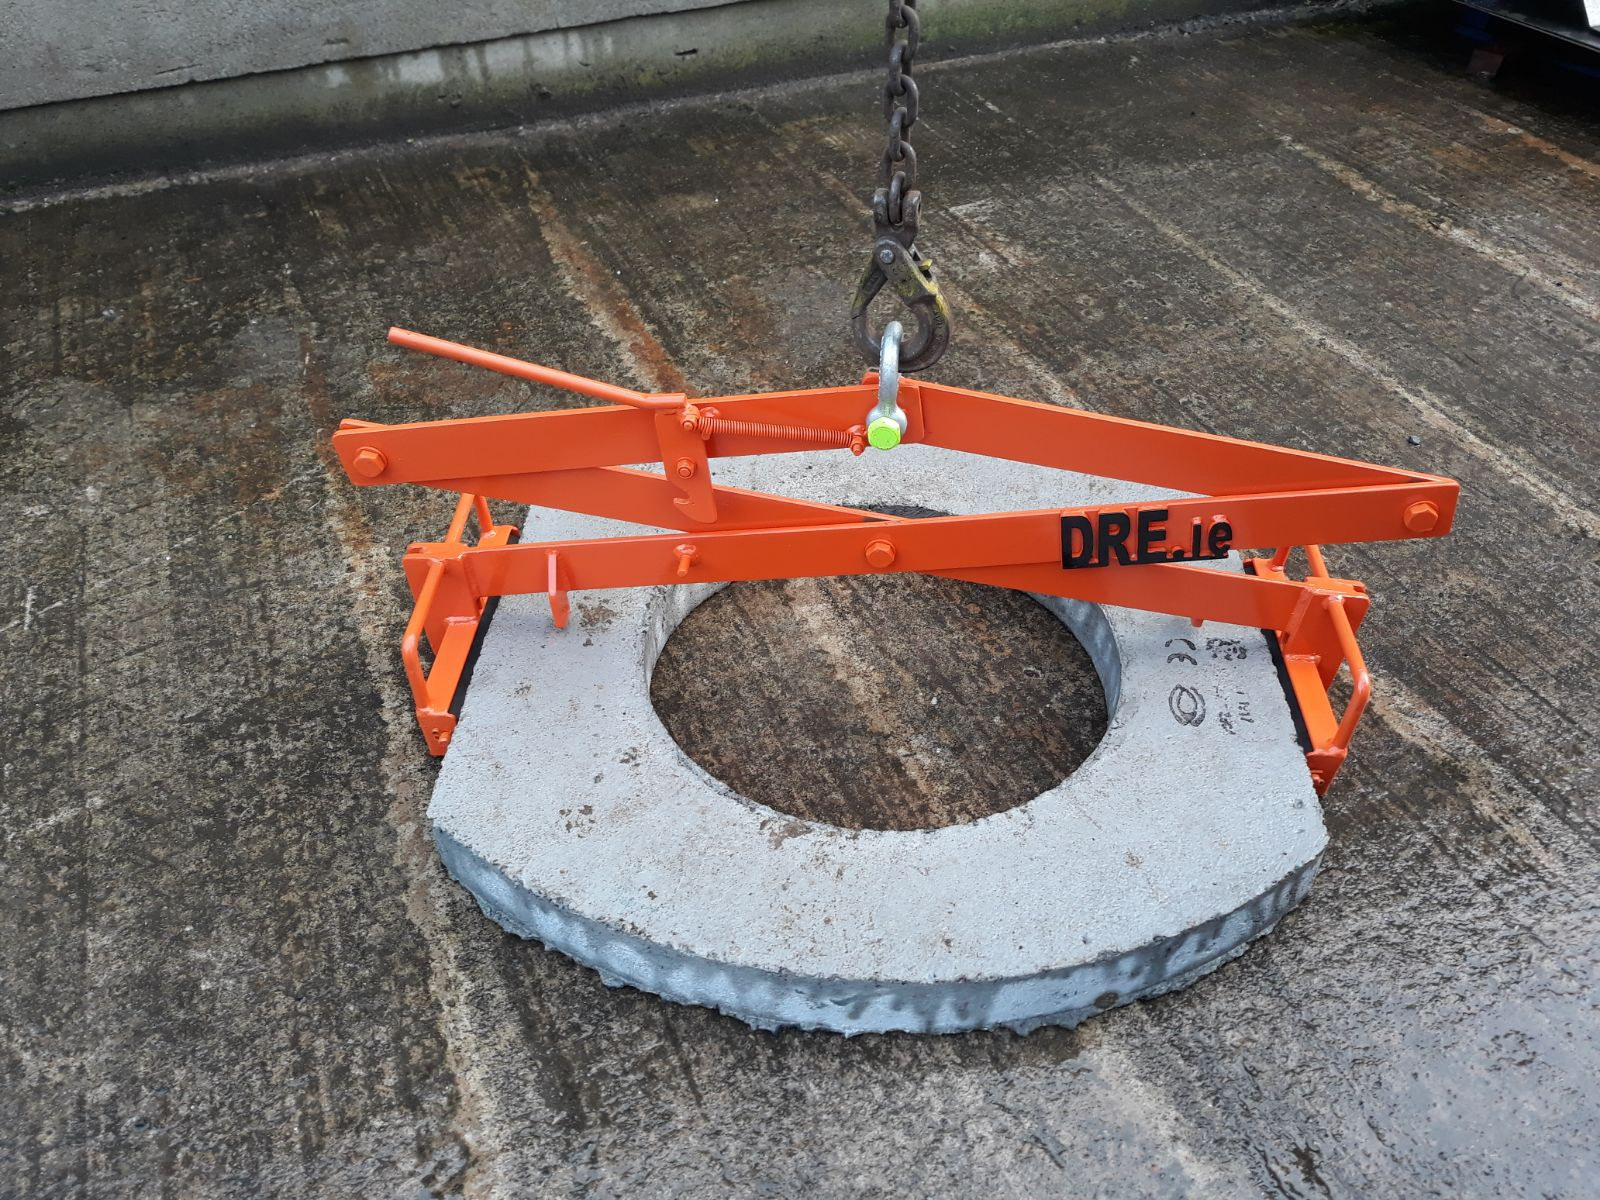 manhole concrete cover slab lifter dre.ie